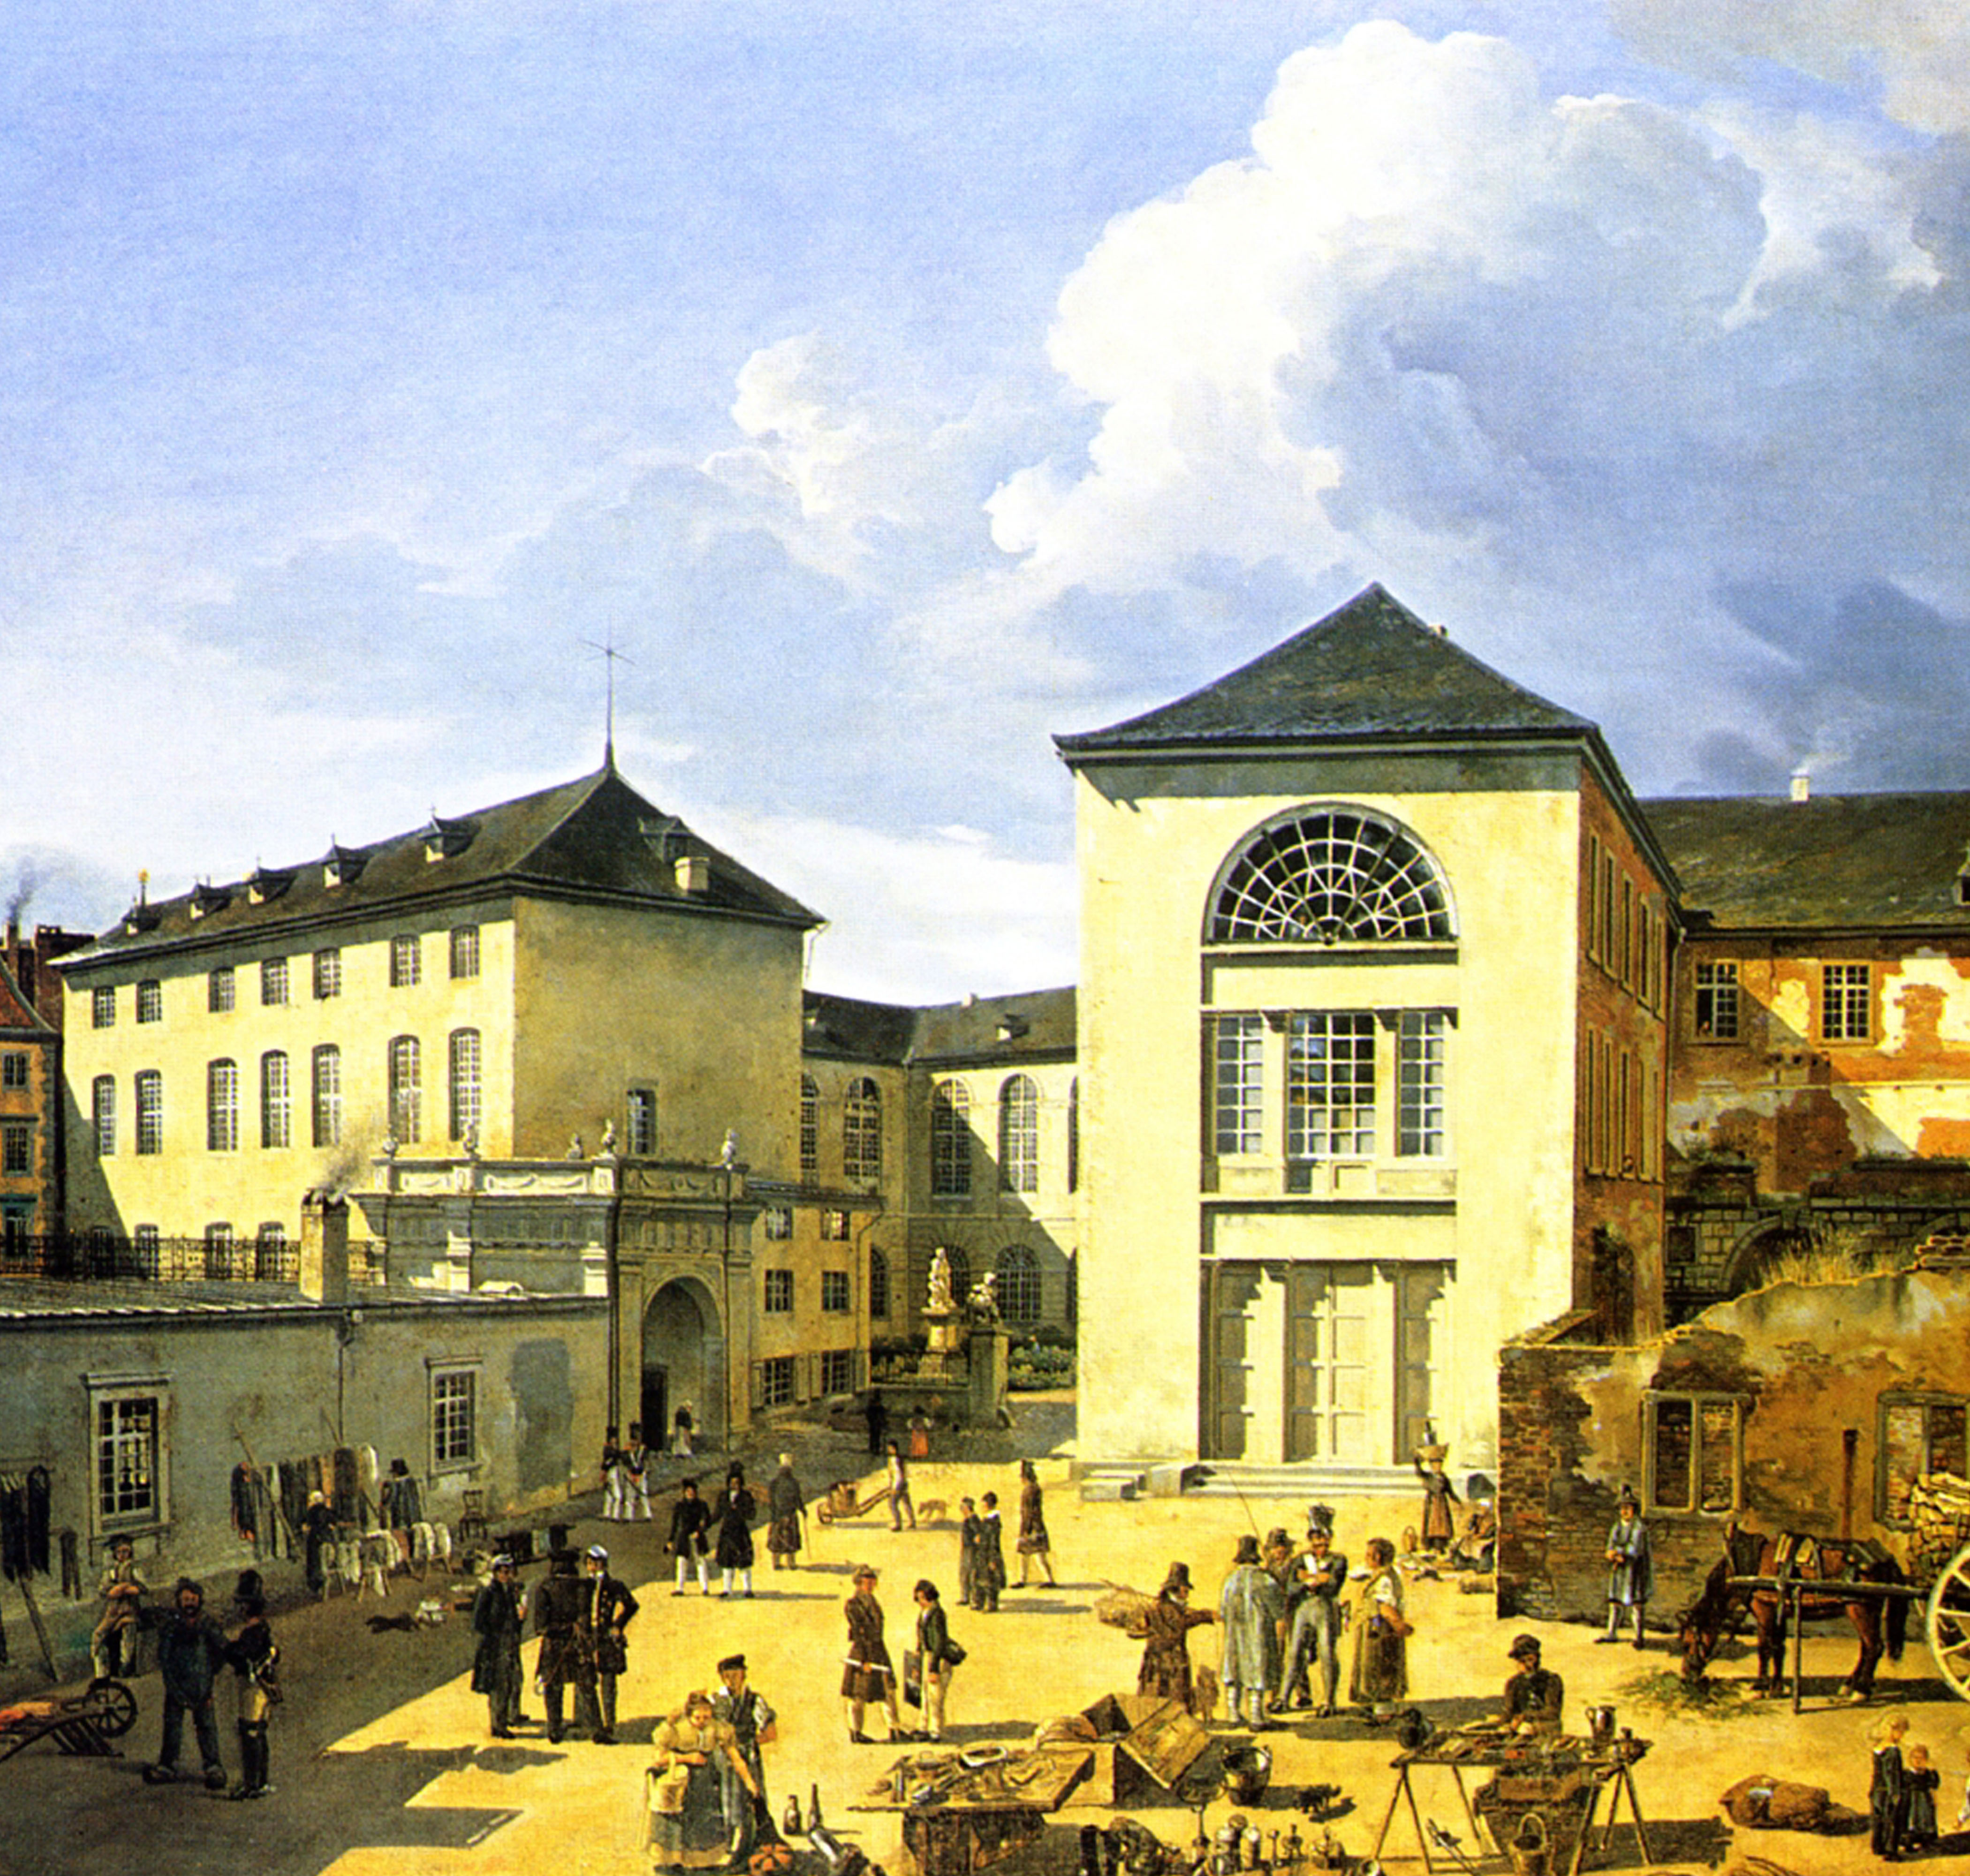 Painting of the Kunstpalast Museum in Dusseldorf